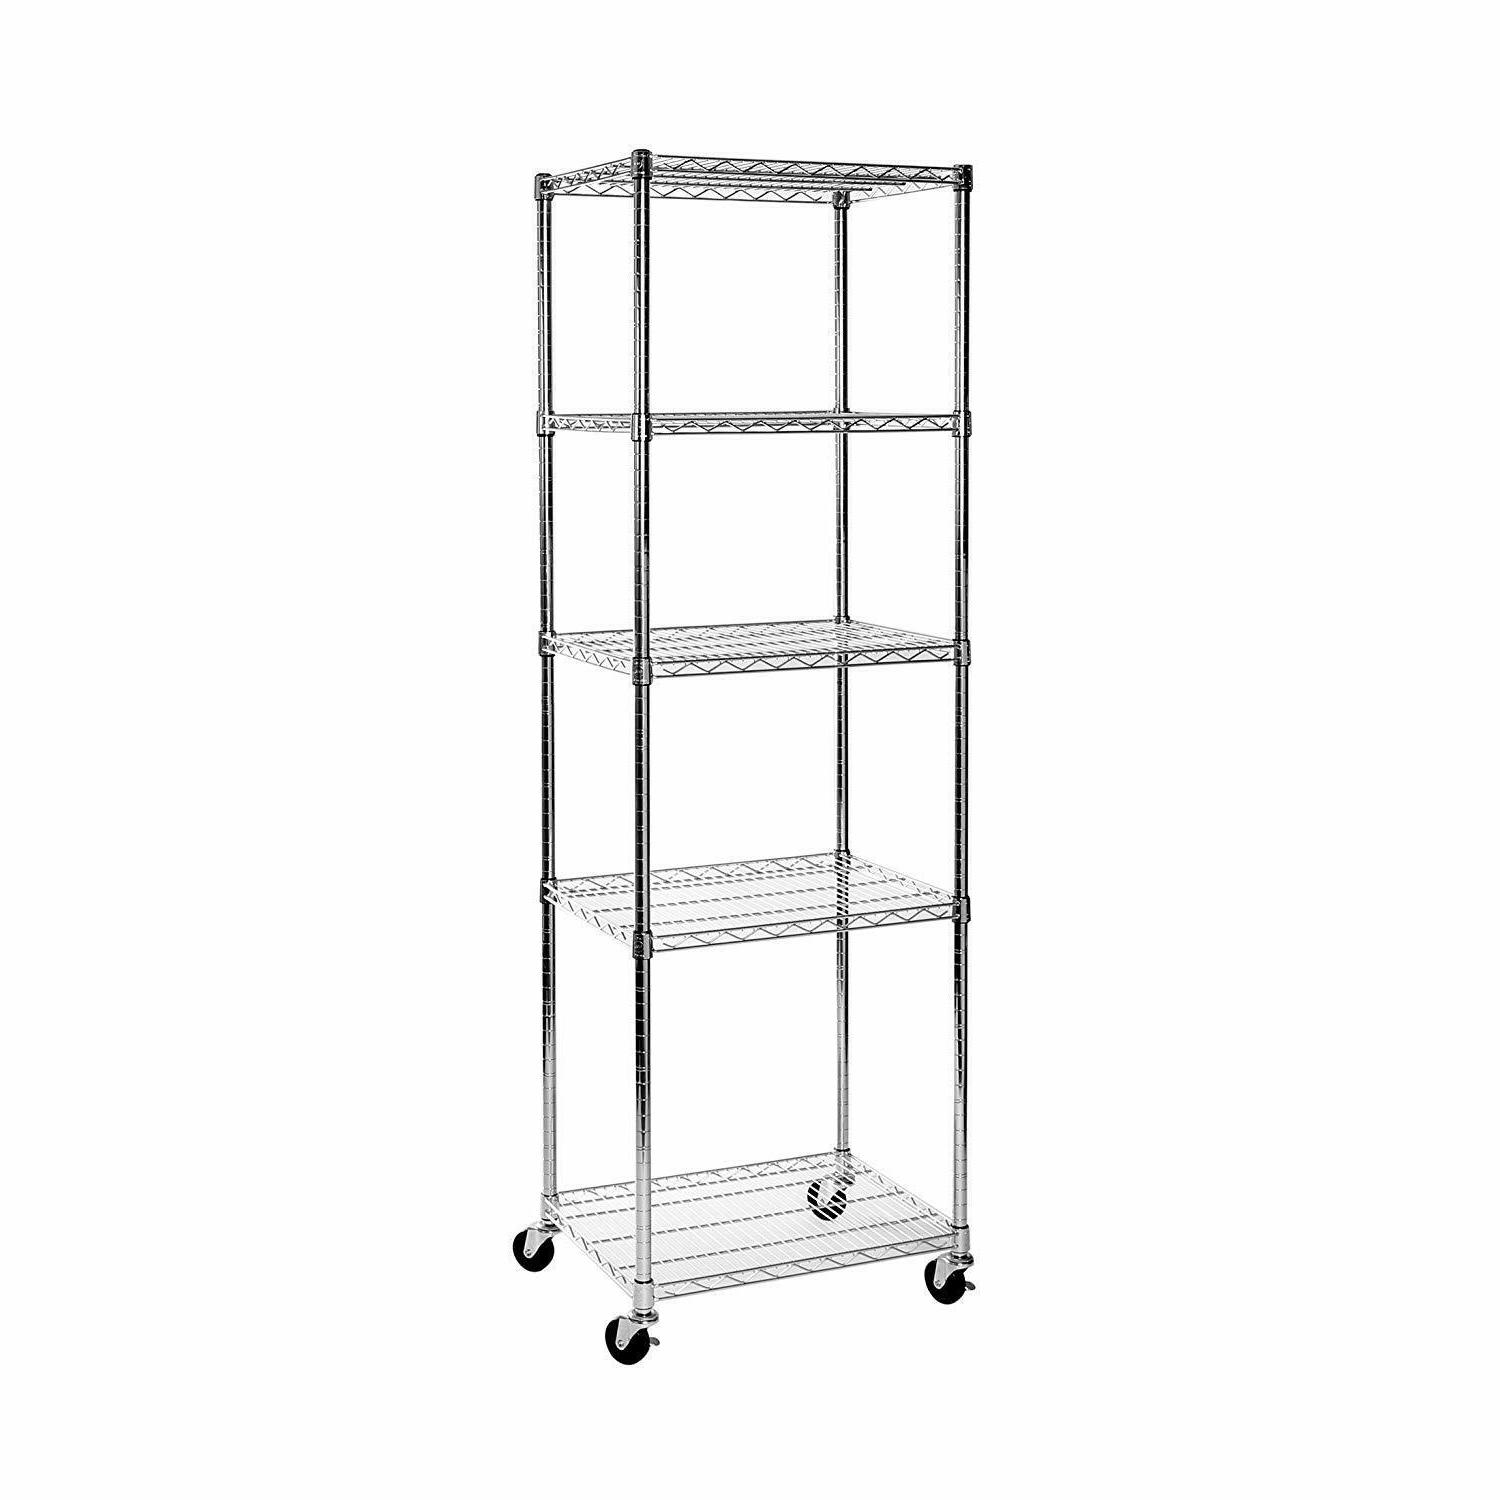 wire shelving rack with wheel storage organizer